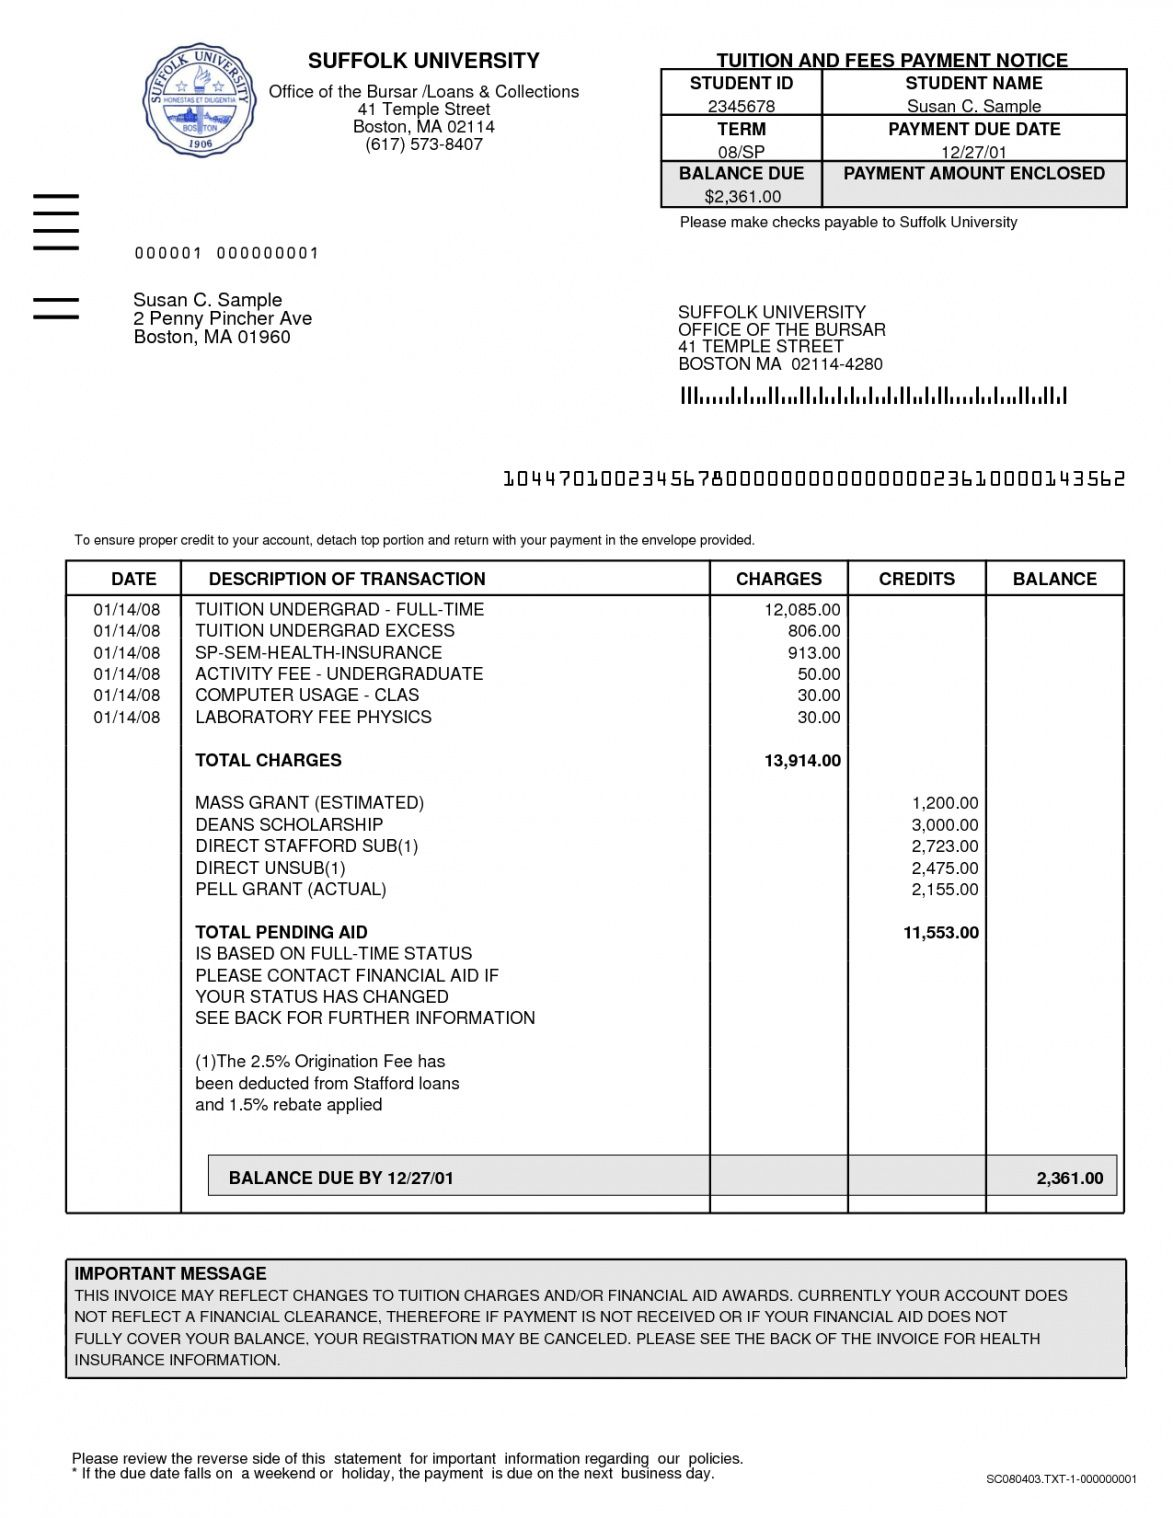 Explore Our Image Of Law Firm Invoice Template Invoice Template Invoice Template Word Invoice Example